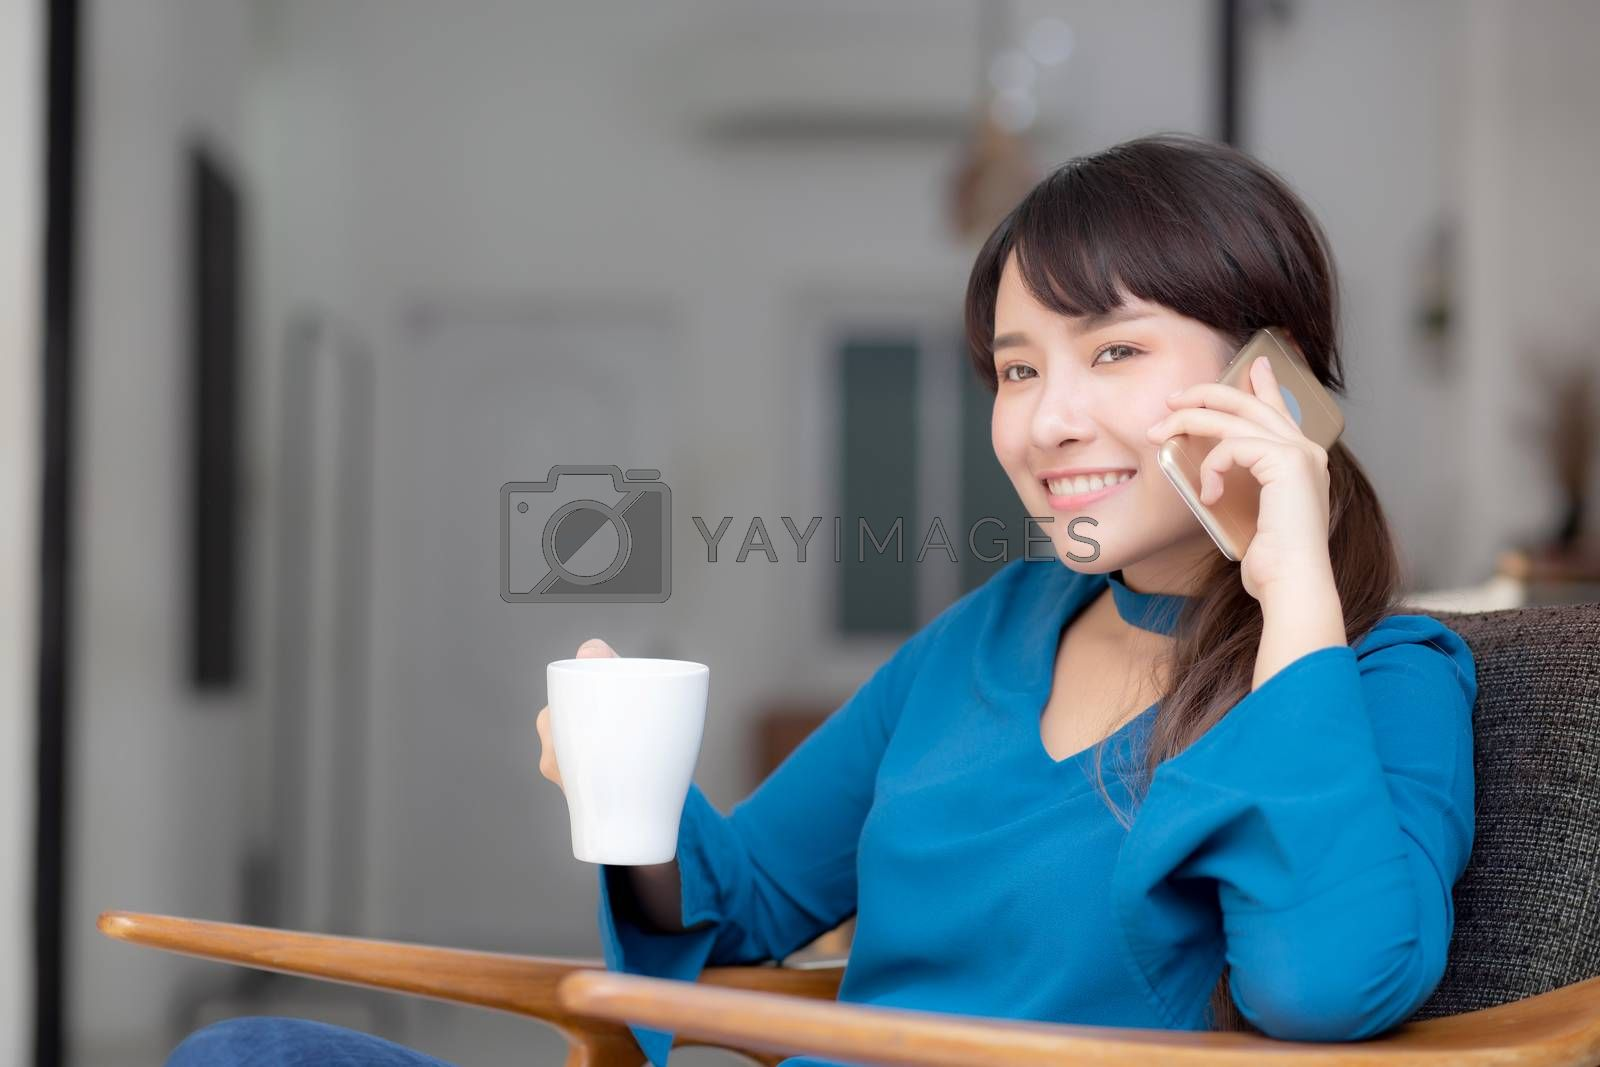 Beautiful portrait young asian woman smiling using mobile smart phone talking enjoy and drink coffee with relax, girl sitting on chair at living room, communication concept.